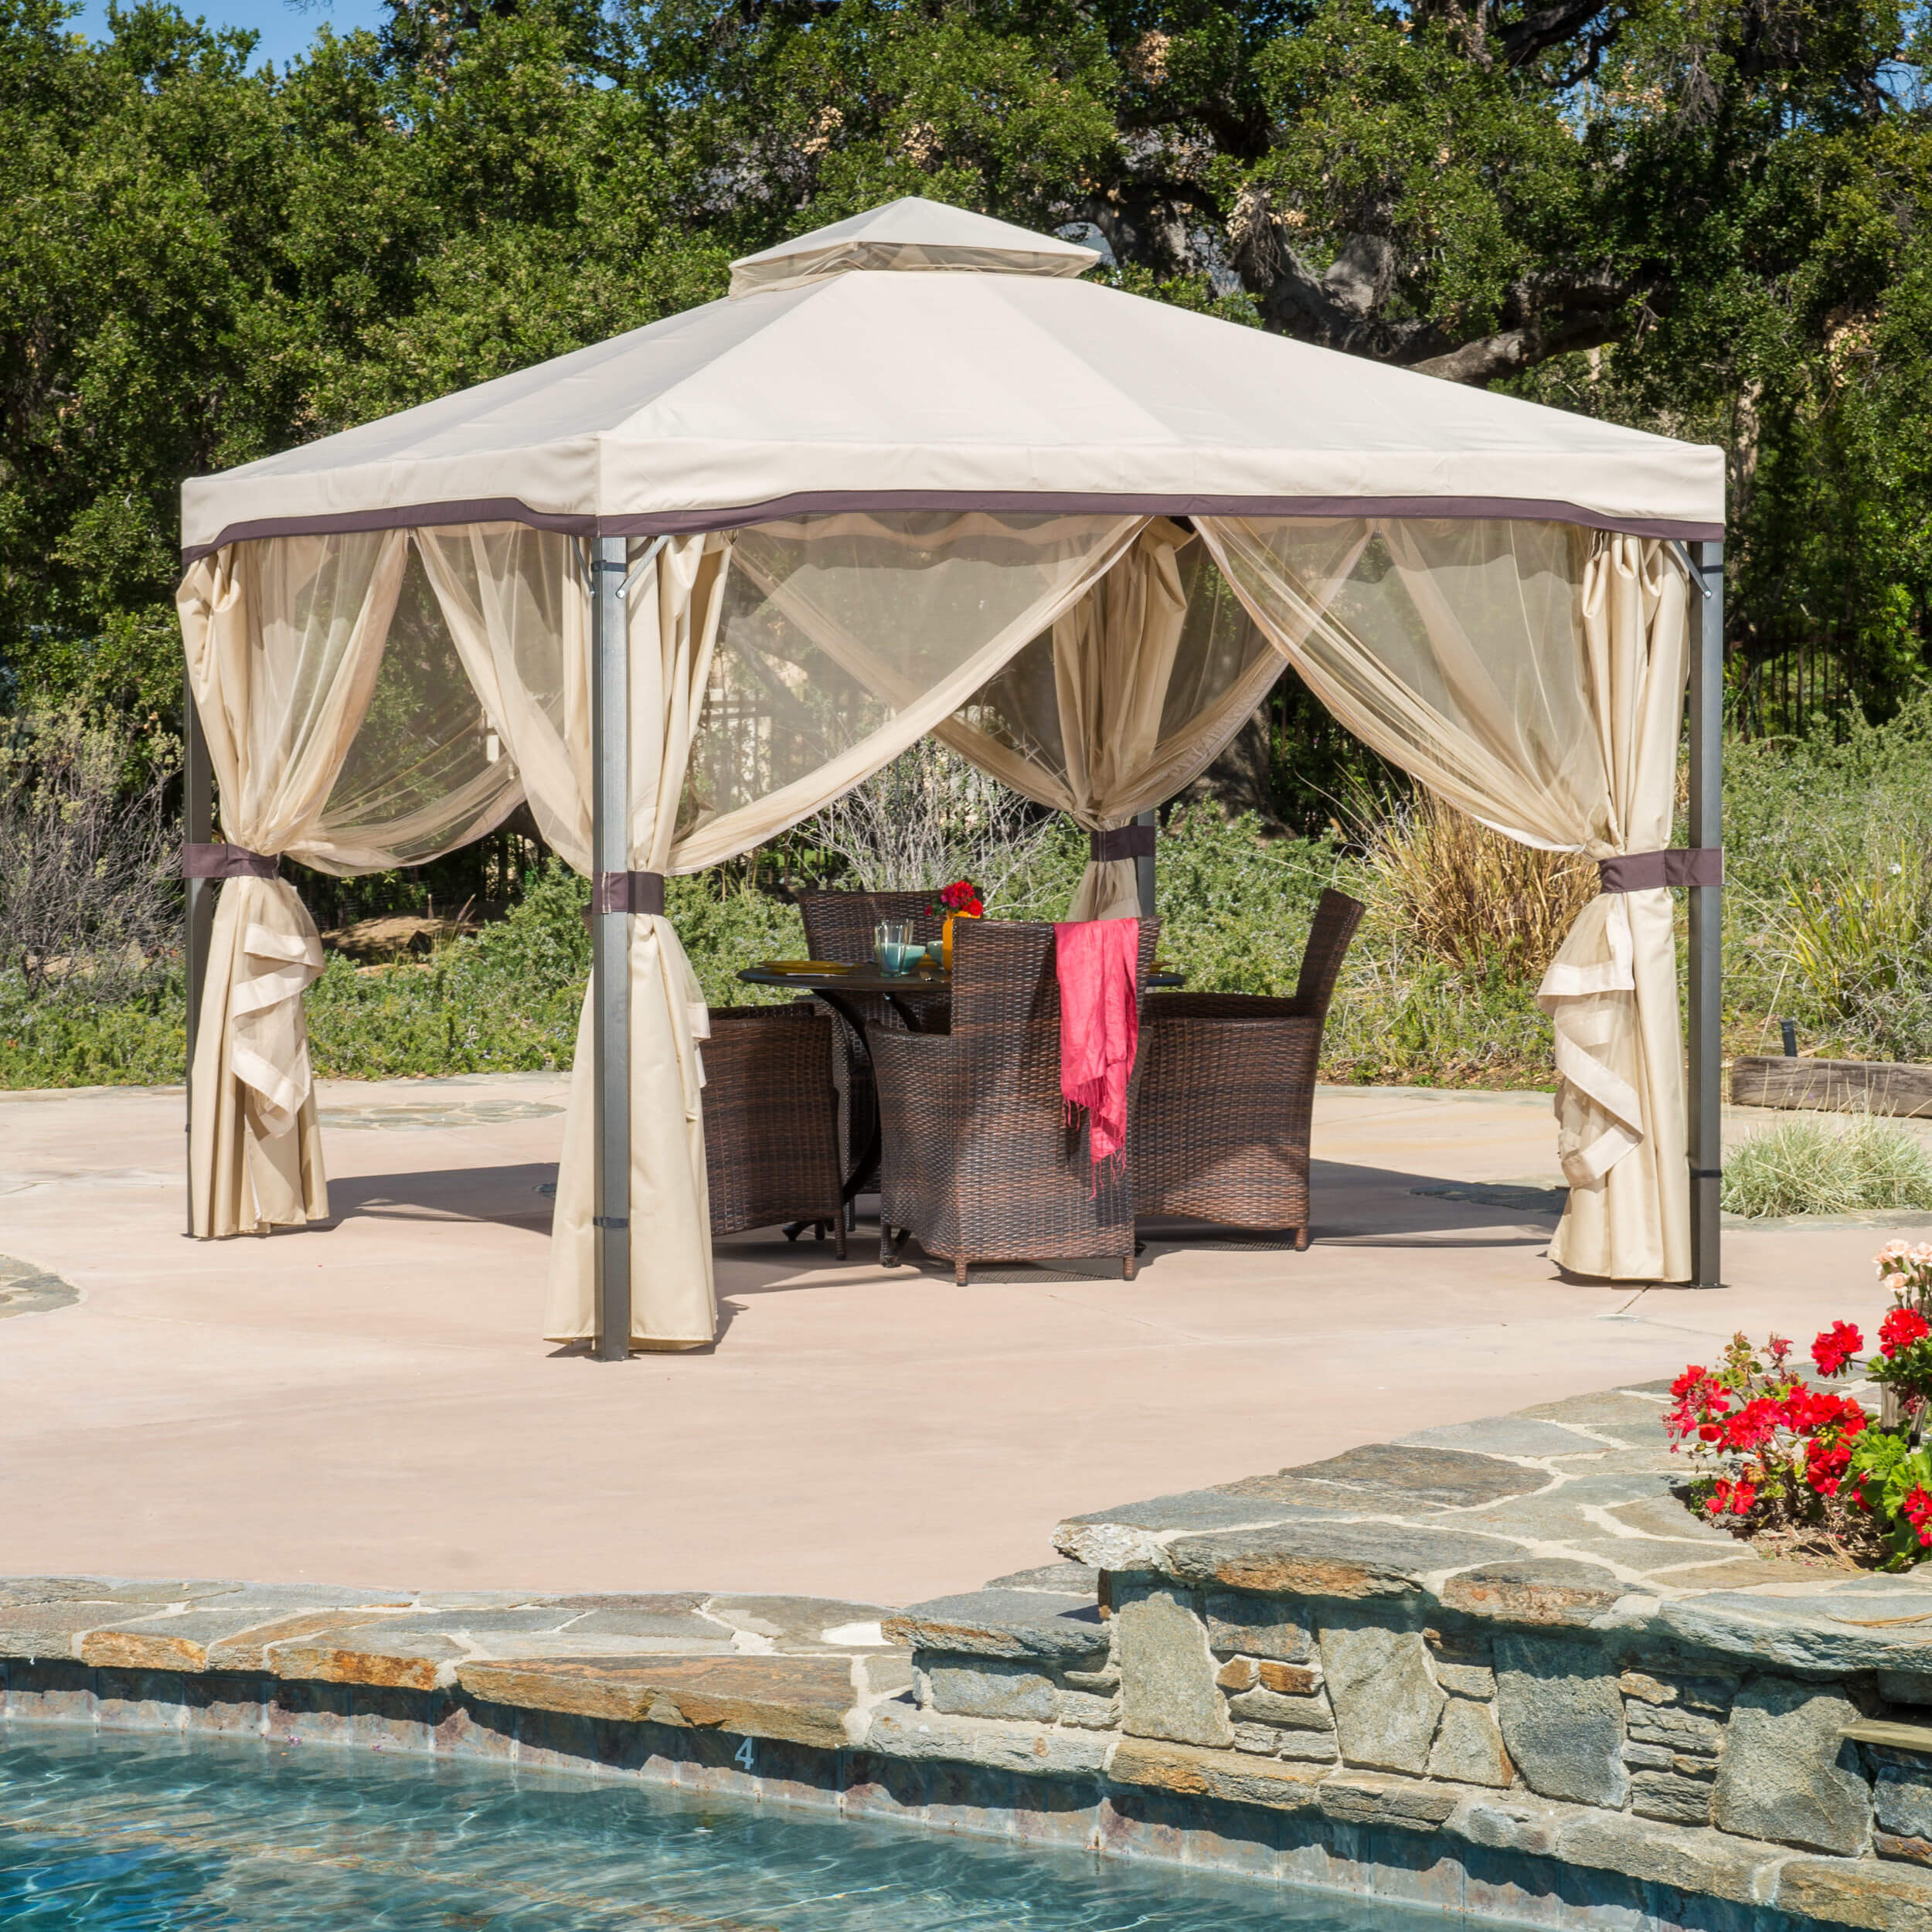 Mobile gazebos are great for any occasion. If you want, you can set them up poolside on a hot day to make a nice shady spot. When you want the gazebo gone, just take it down or move it somewhere else.